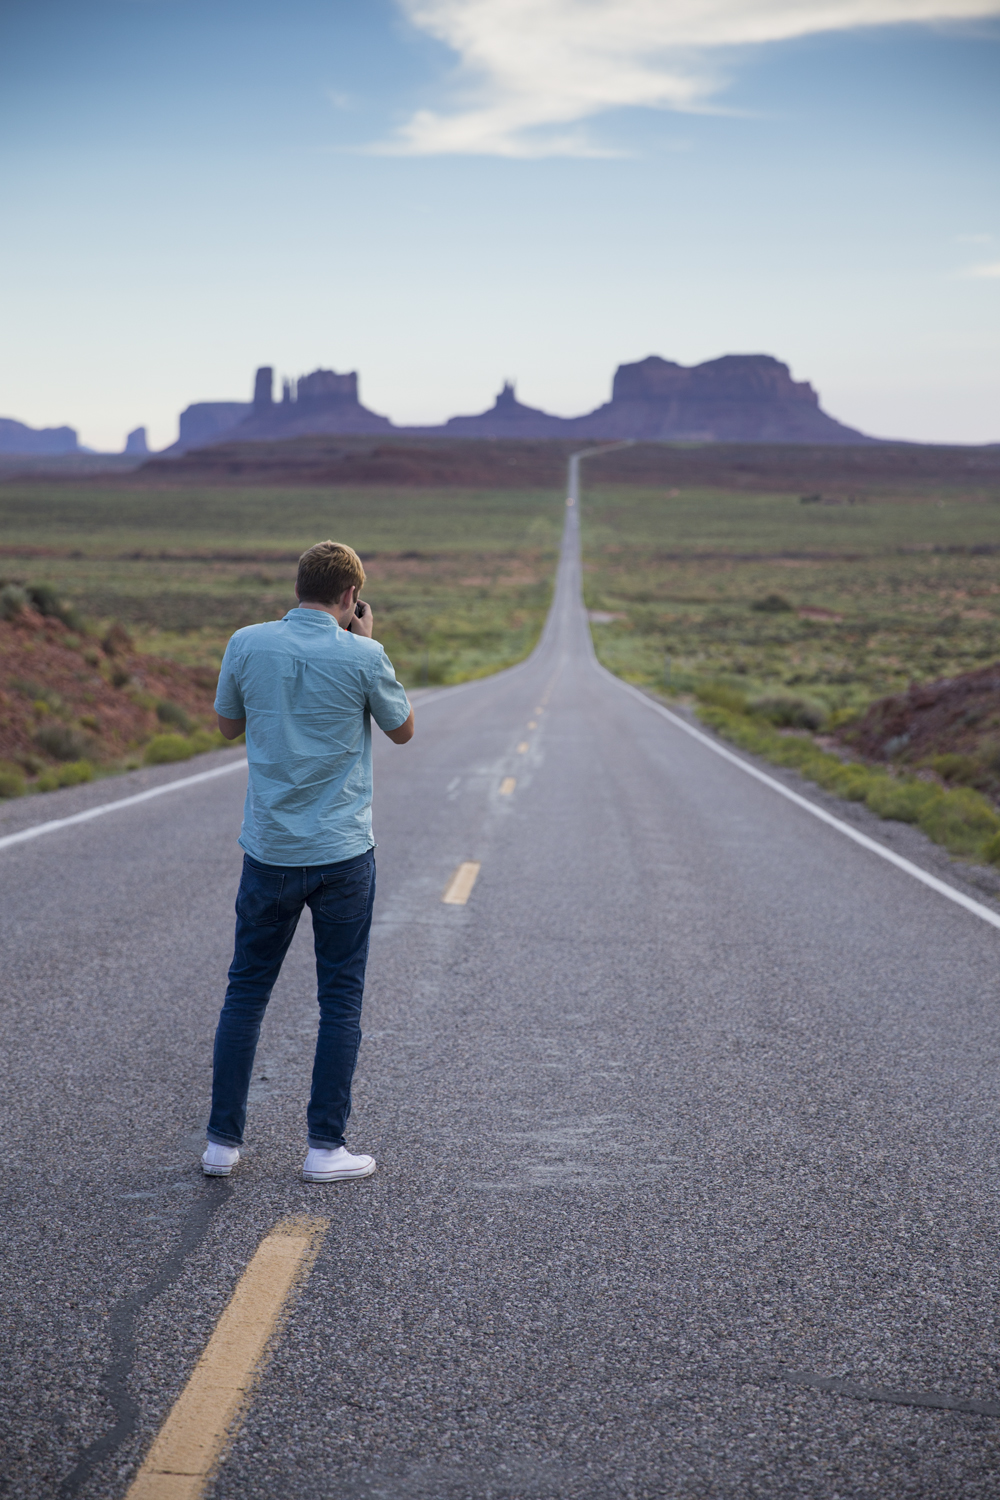 Jon Jenkins shooting photos of Monument Valley  Canon 6D, Canon 24-70mm f/2.8L (iso320, f/2.8, 1/500s)